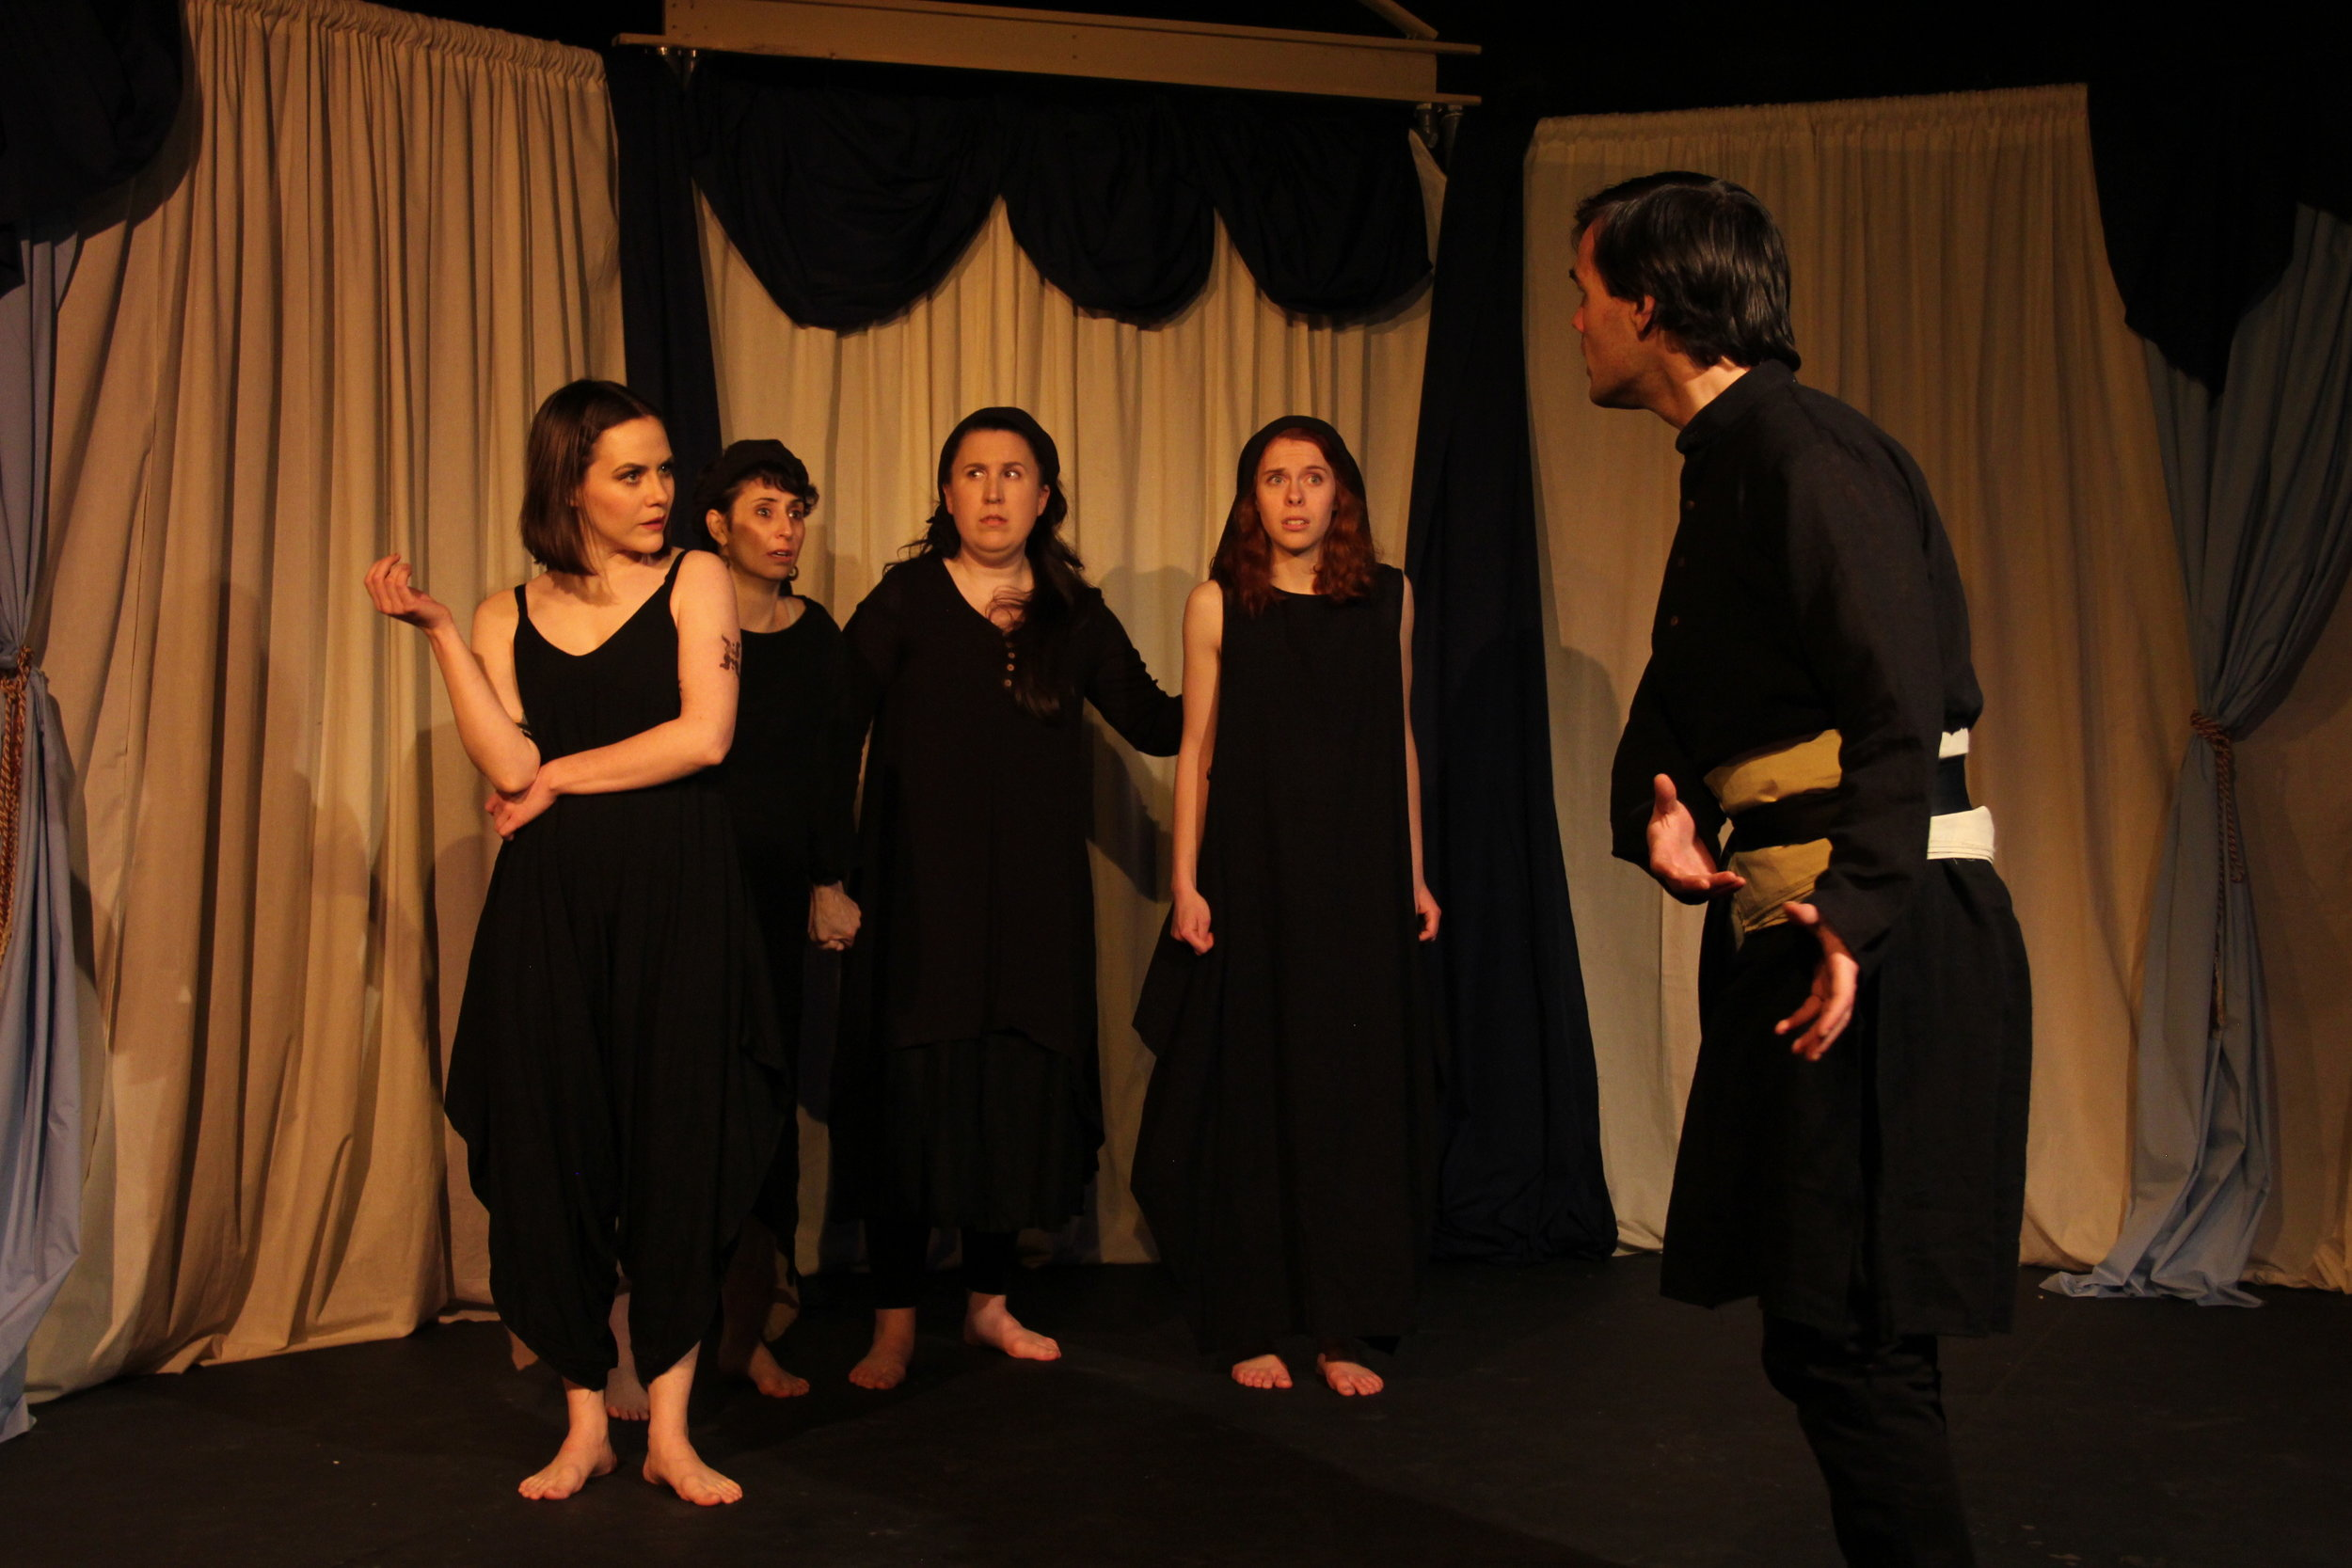 """Medea (Cara Johnston) strikes a defiant pose as she speaks to a messenger (Teddi Jules Gardener) while her friends (Abigail Stein, Madeline Wakley and Maura Atwood, from left) listen with concern in a scene from Voices Found Repertory's """"Medea."""""""